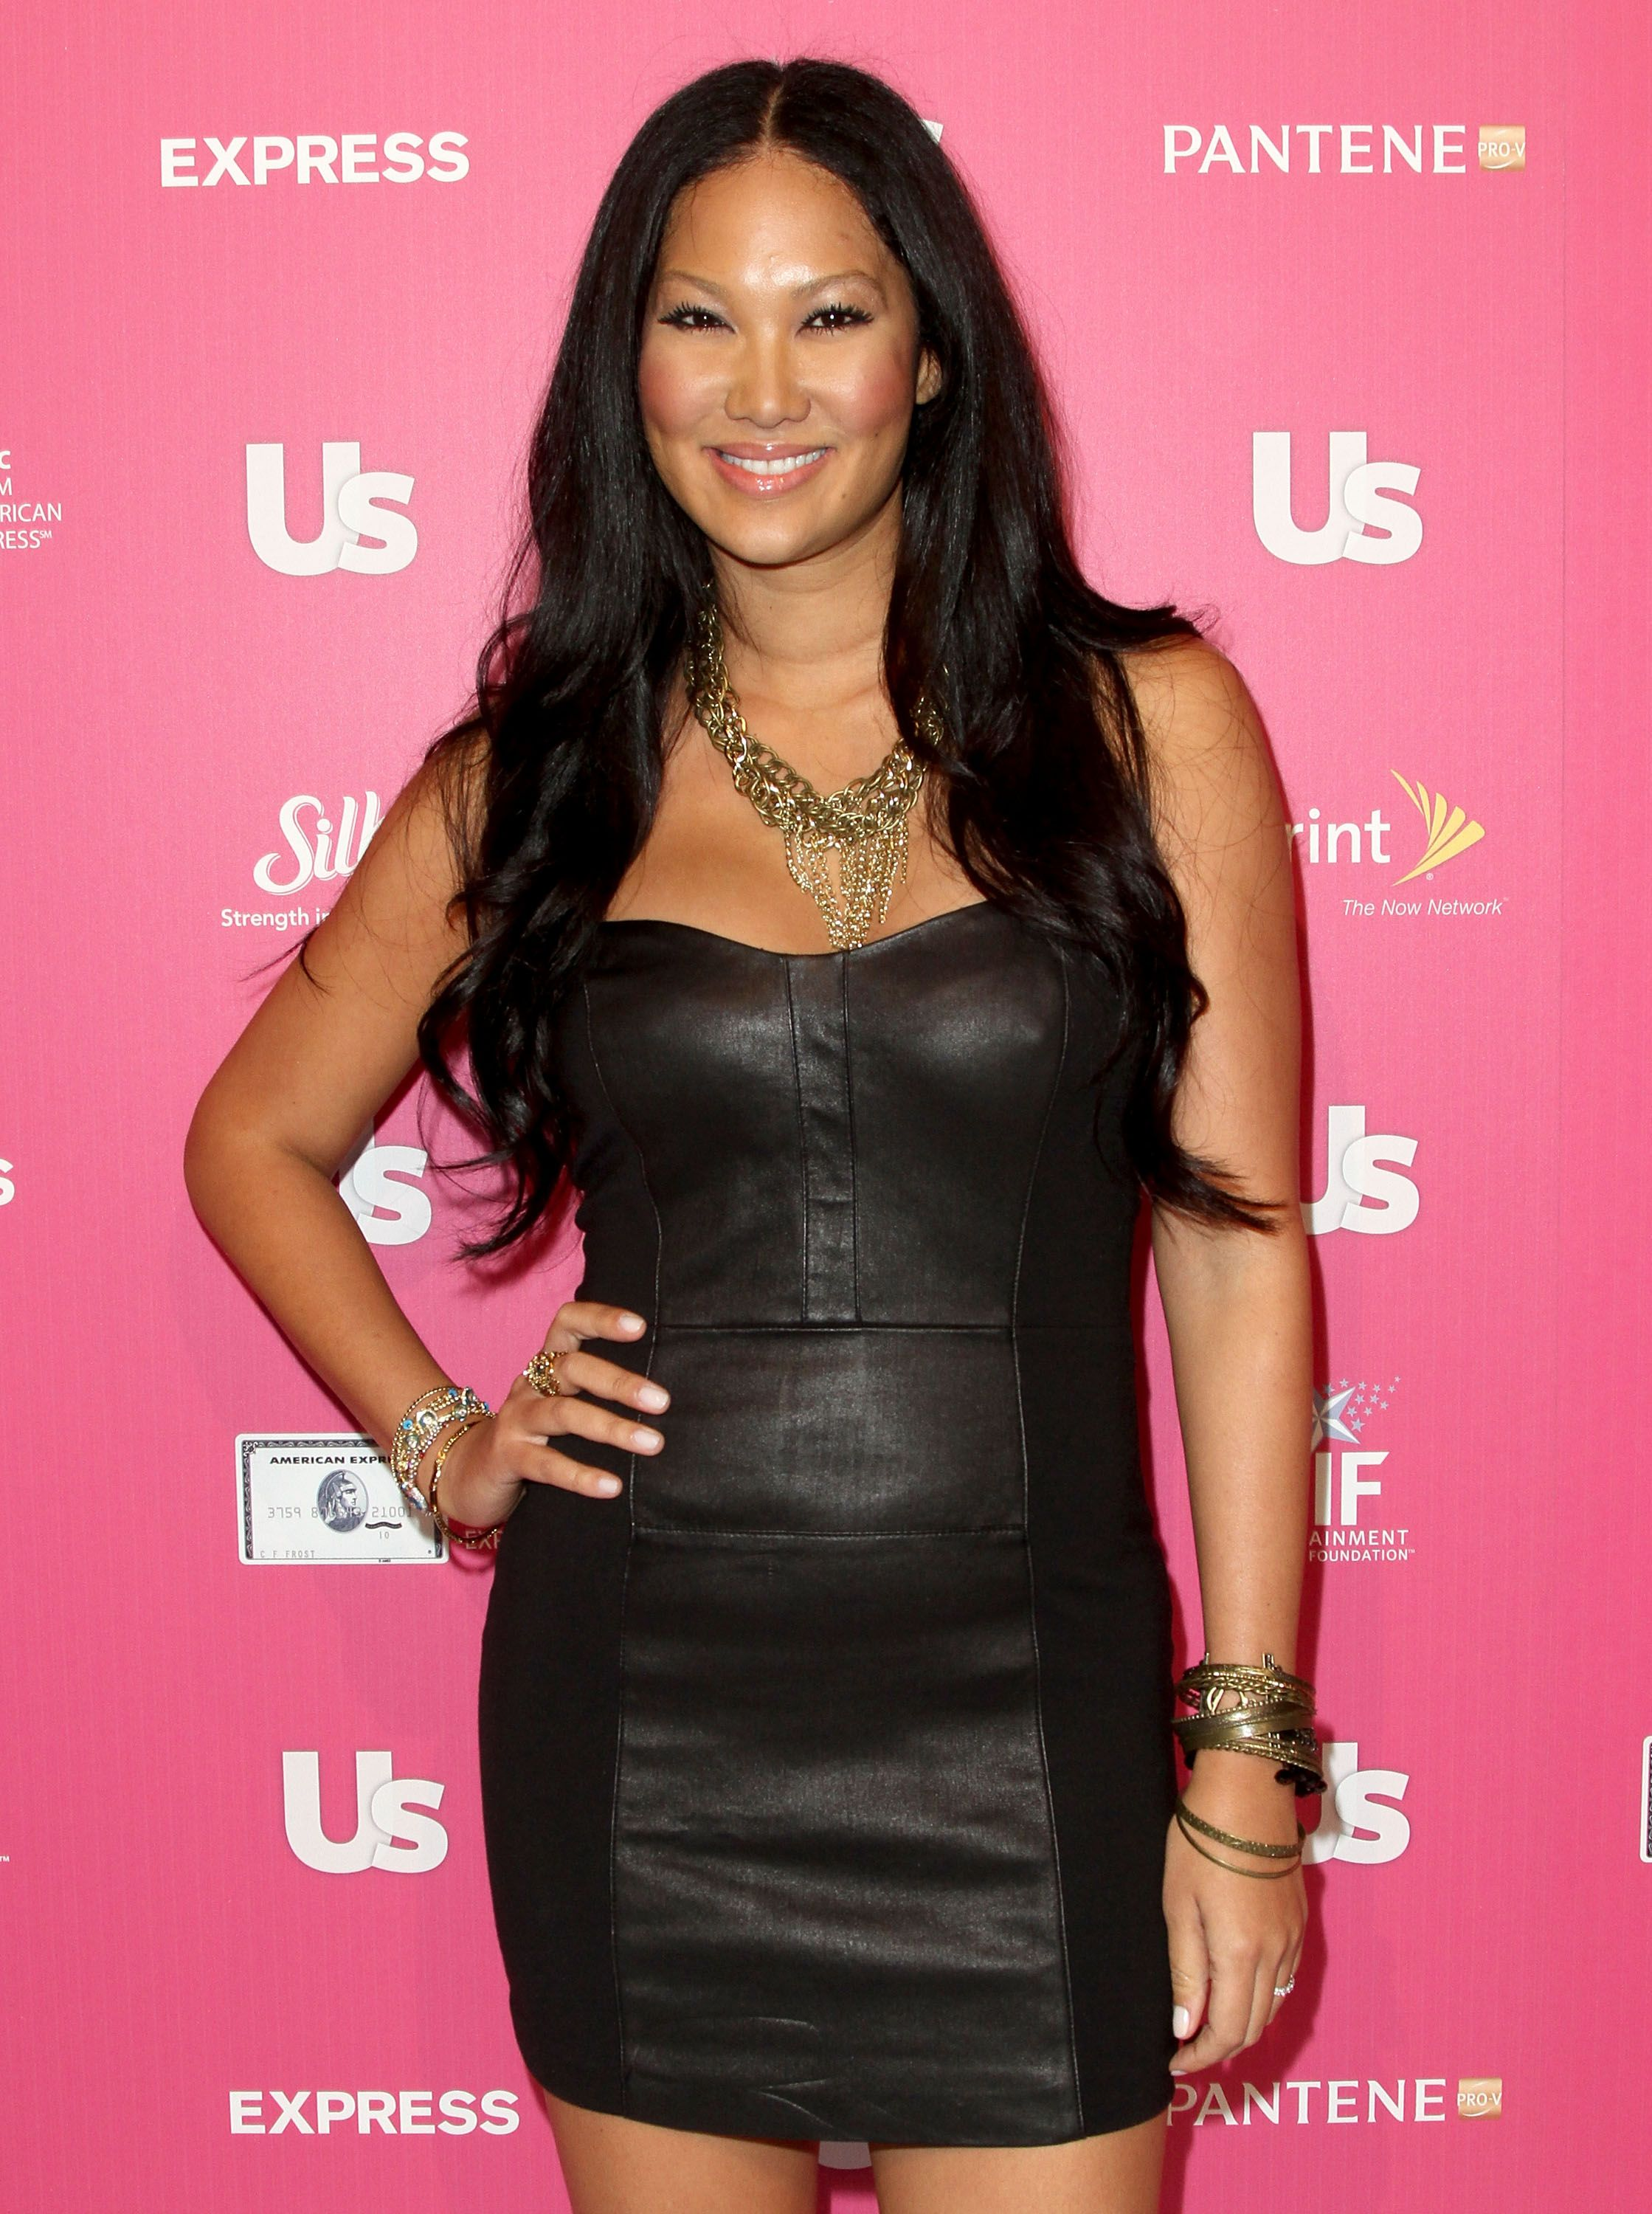 Kimora Lee Simmons at Us Weekly on November 18, 2010 in Hollywood.   Photo: Getty Images